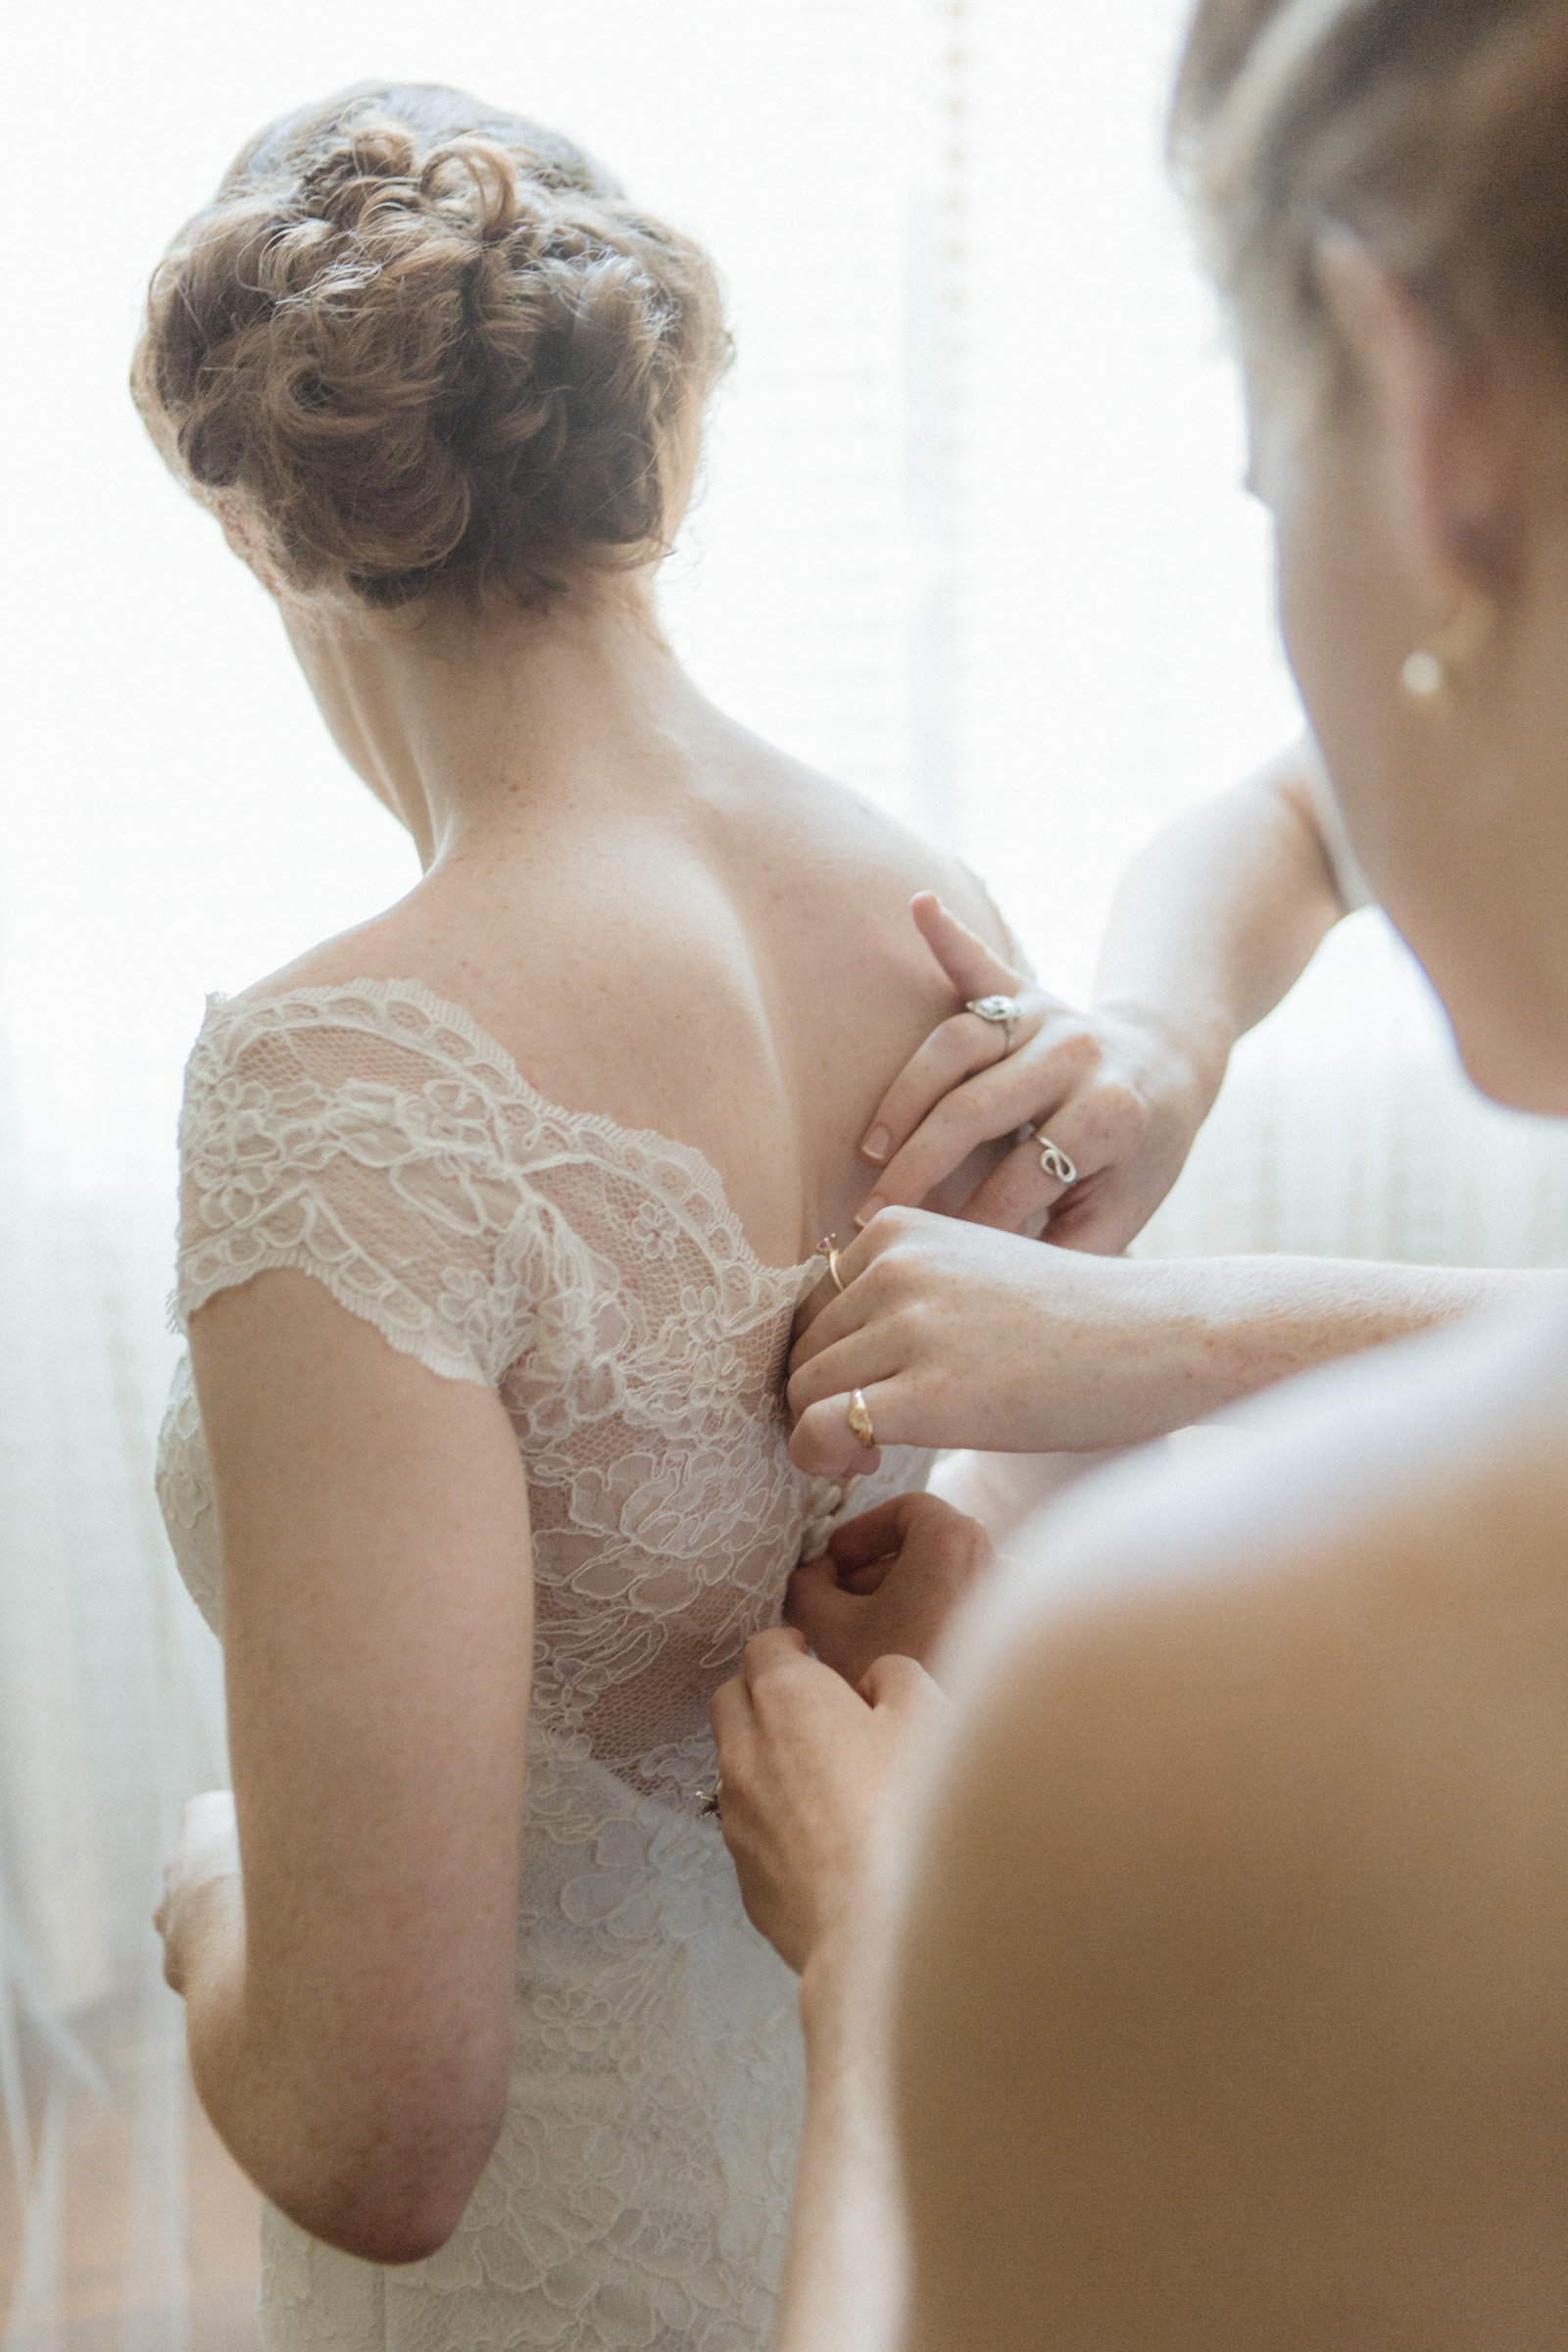 Bridemaids button up bride's gown - Estate at Florentine Gardens wedding - Hudson Valley Wedding - Kelsey & Anish's wedding - Amy Sims Photography